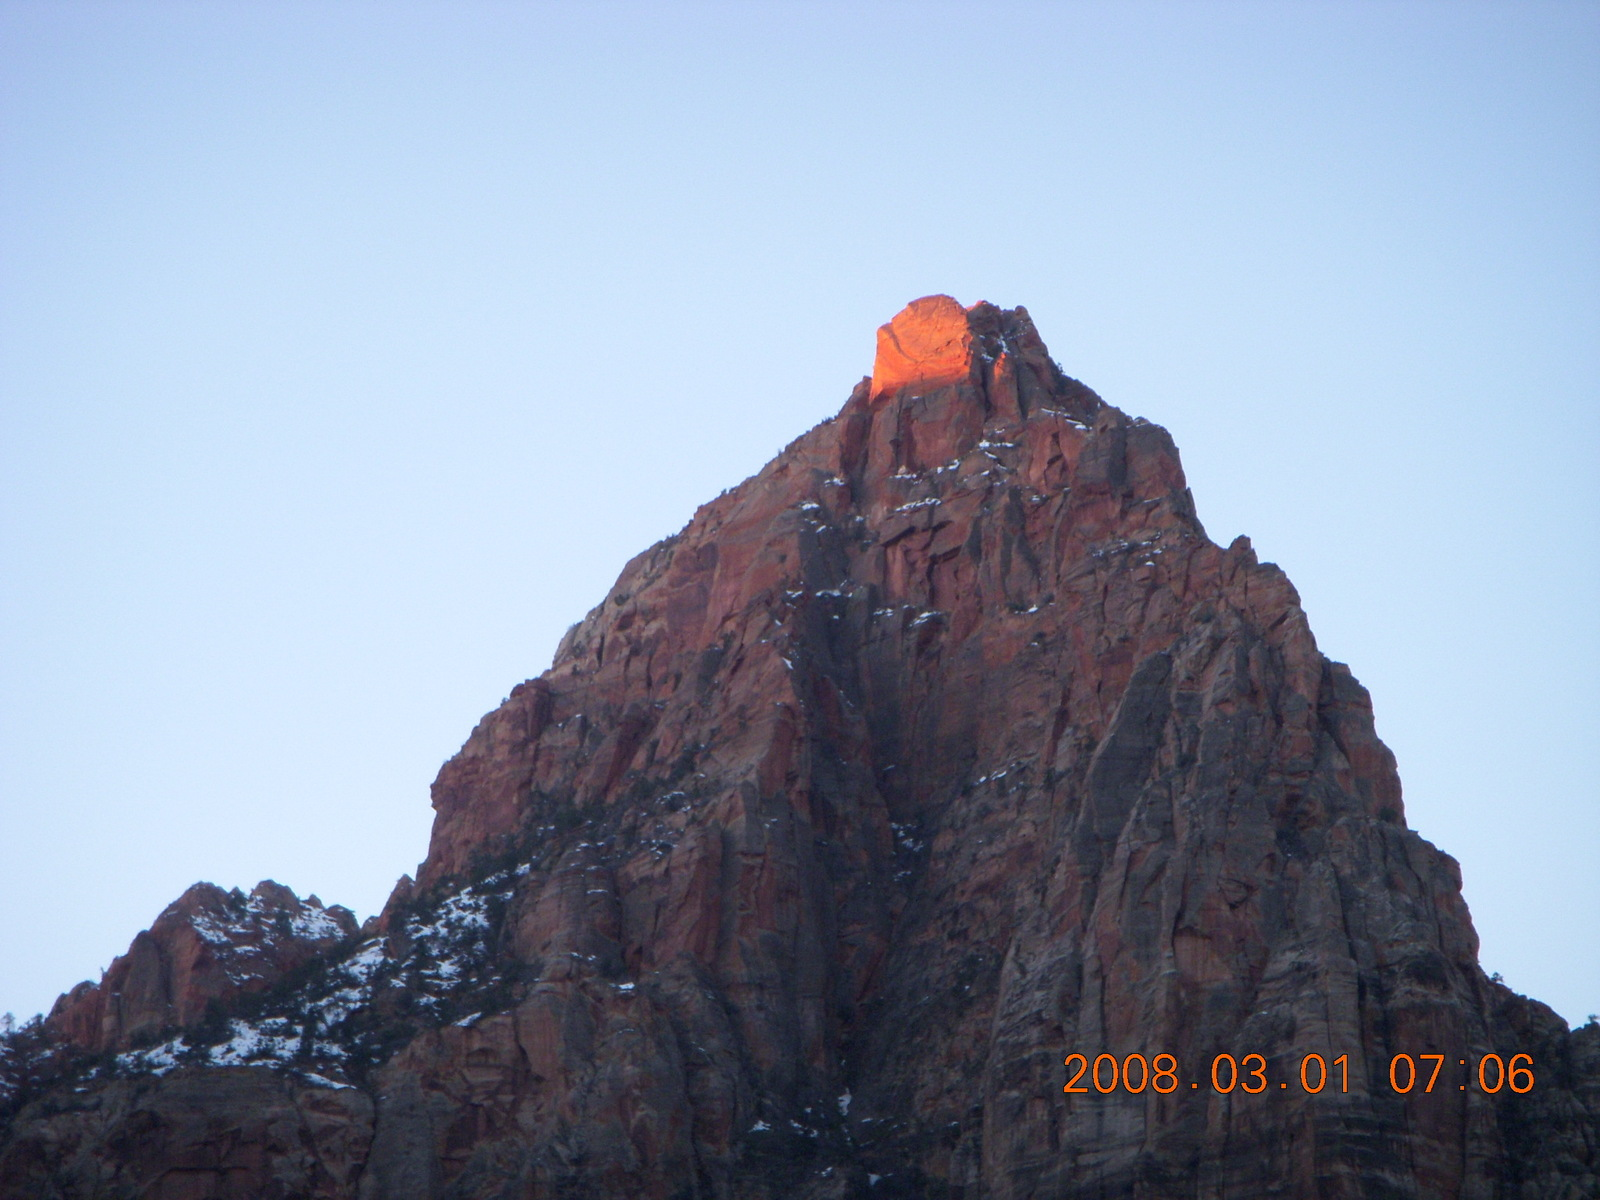 Zion National Park - Watchman hike - first light